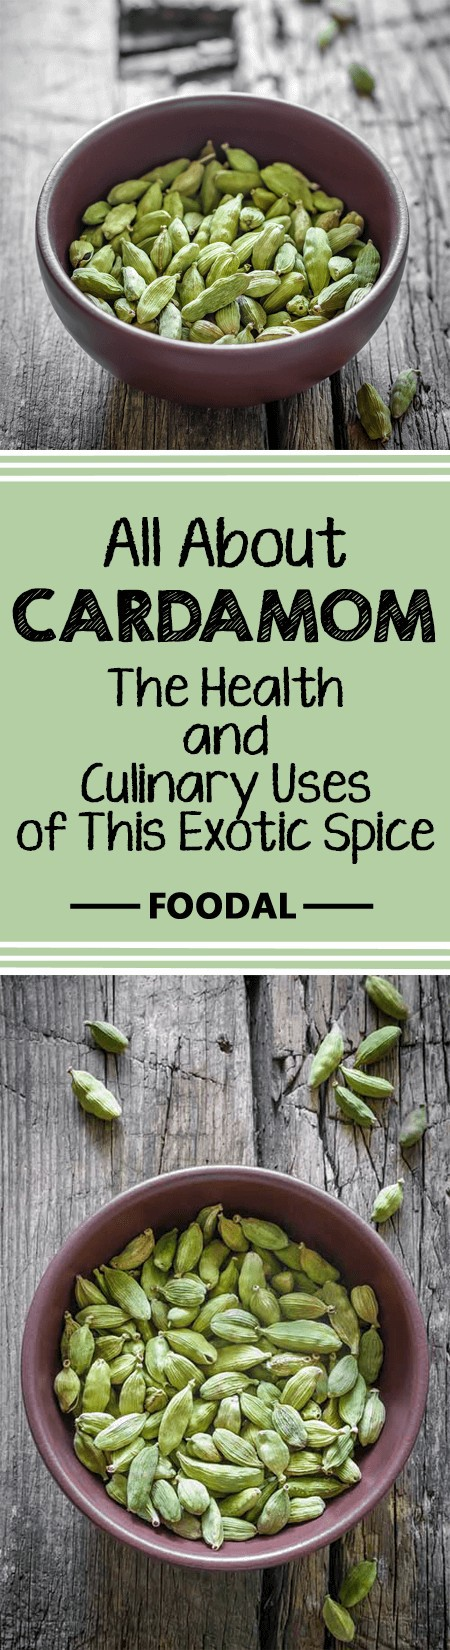 Cardamom is a versatile spice with many uses, both in the kitchen and as part of an herbal medicine cabinet. Discover more about its history, and how to use it in your home – read more now on Foodal. https://foodal.com/knowledge/herbs-spices/cardamom-health-and-culinary-uses/